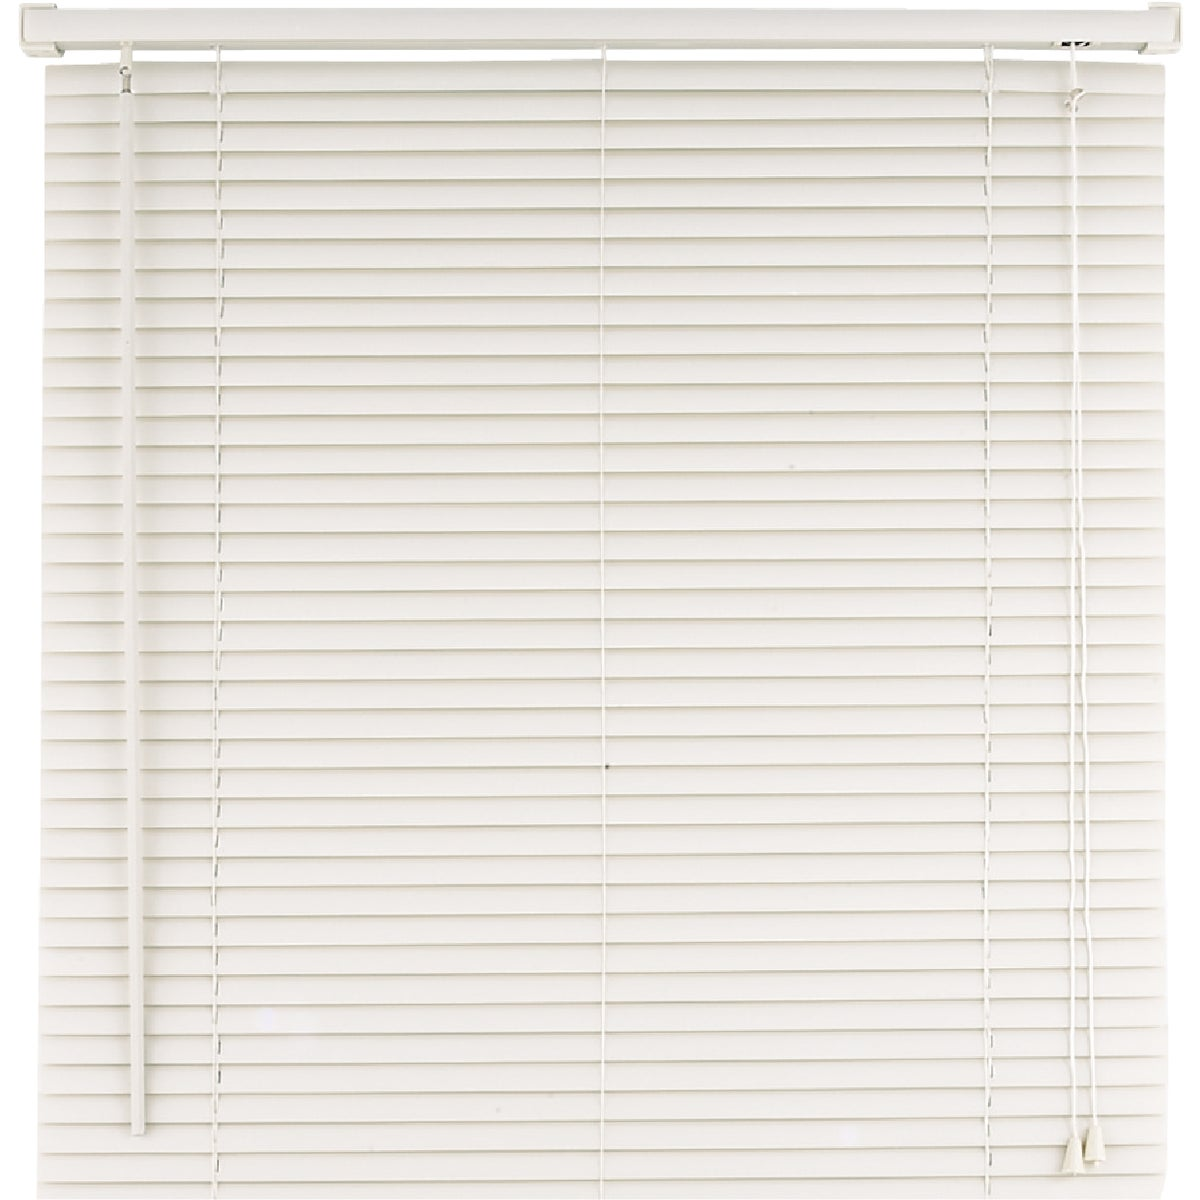 36X72 WHITE MINI BLIND - 3672W by Lotus Wind Incom